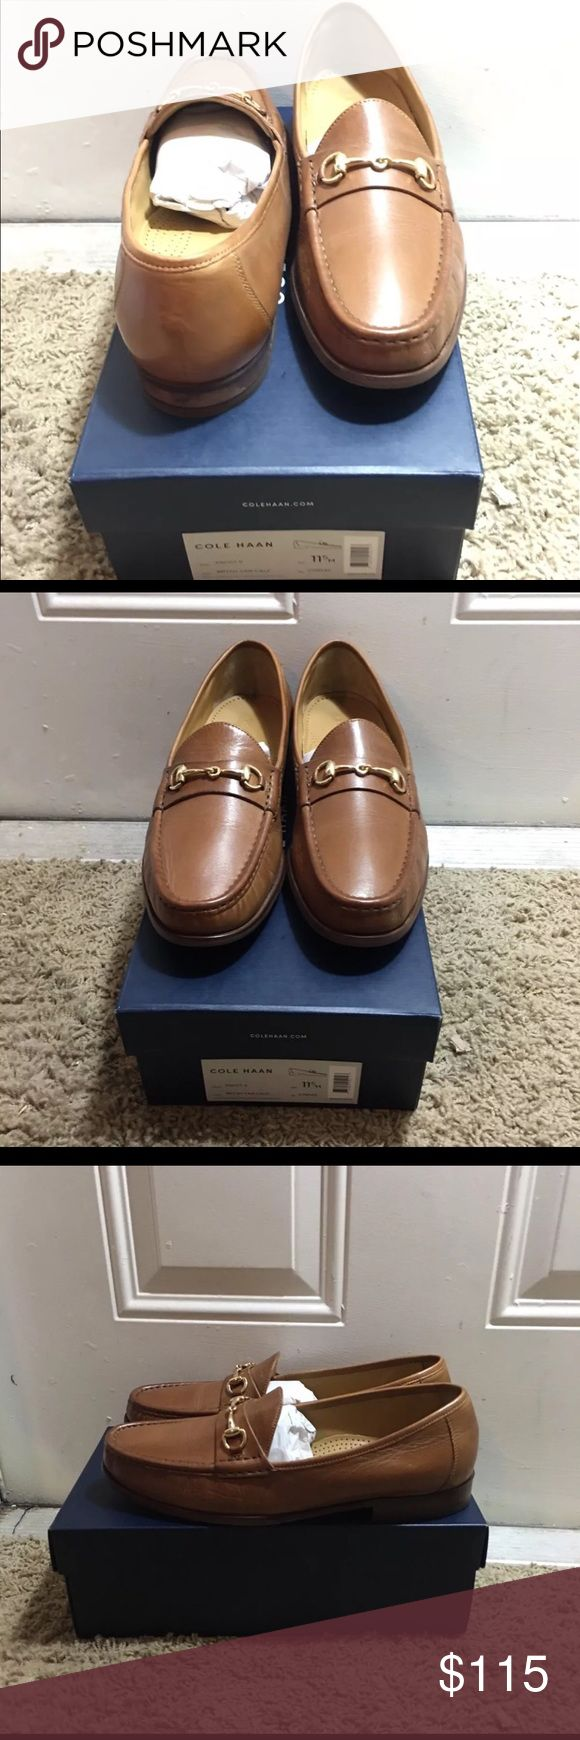 Cole Haan Ascot Bit Loafer 100% Authentic Cole Haan Loafer Ascot Bit Loafer     size: 11.5                                                                        worn once comes with original box Cole Haan Shoes Loafers & Slip-Ons